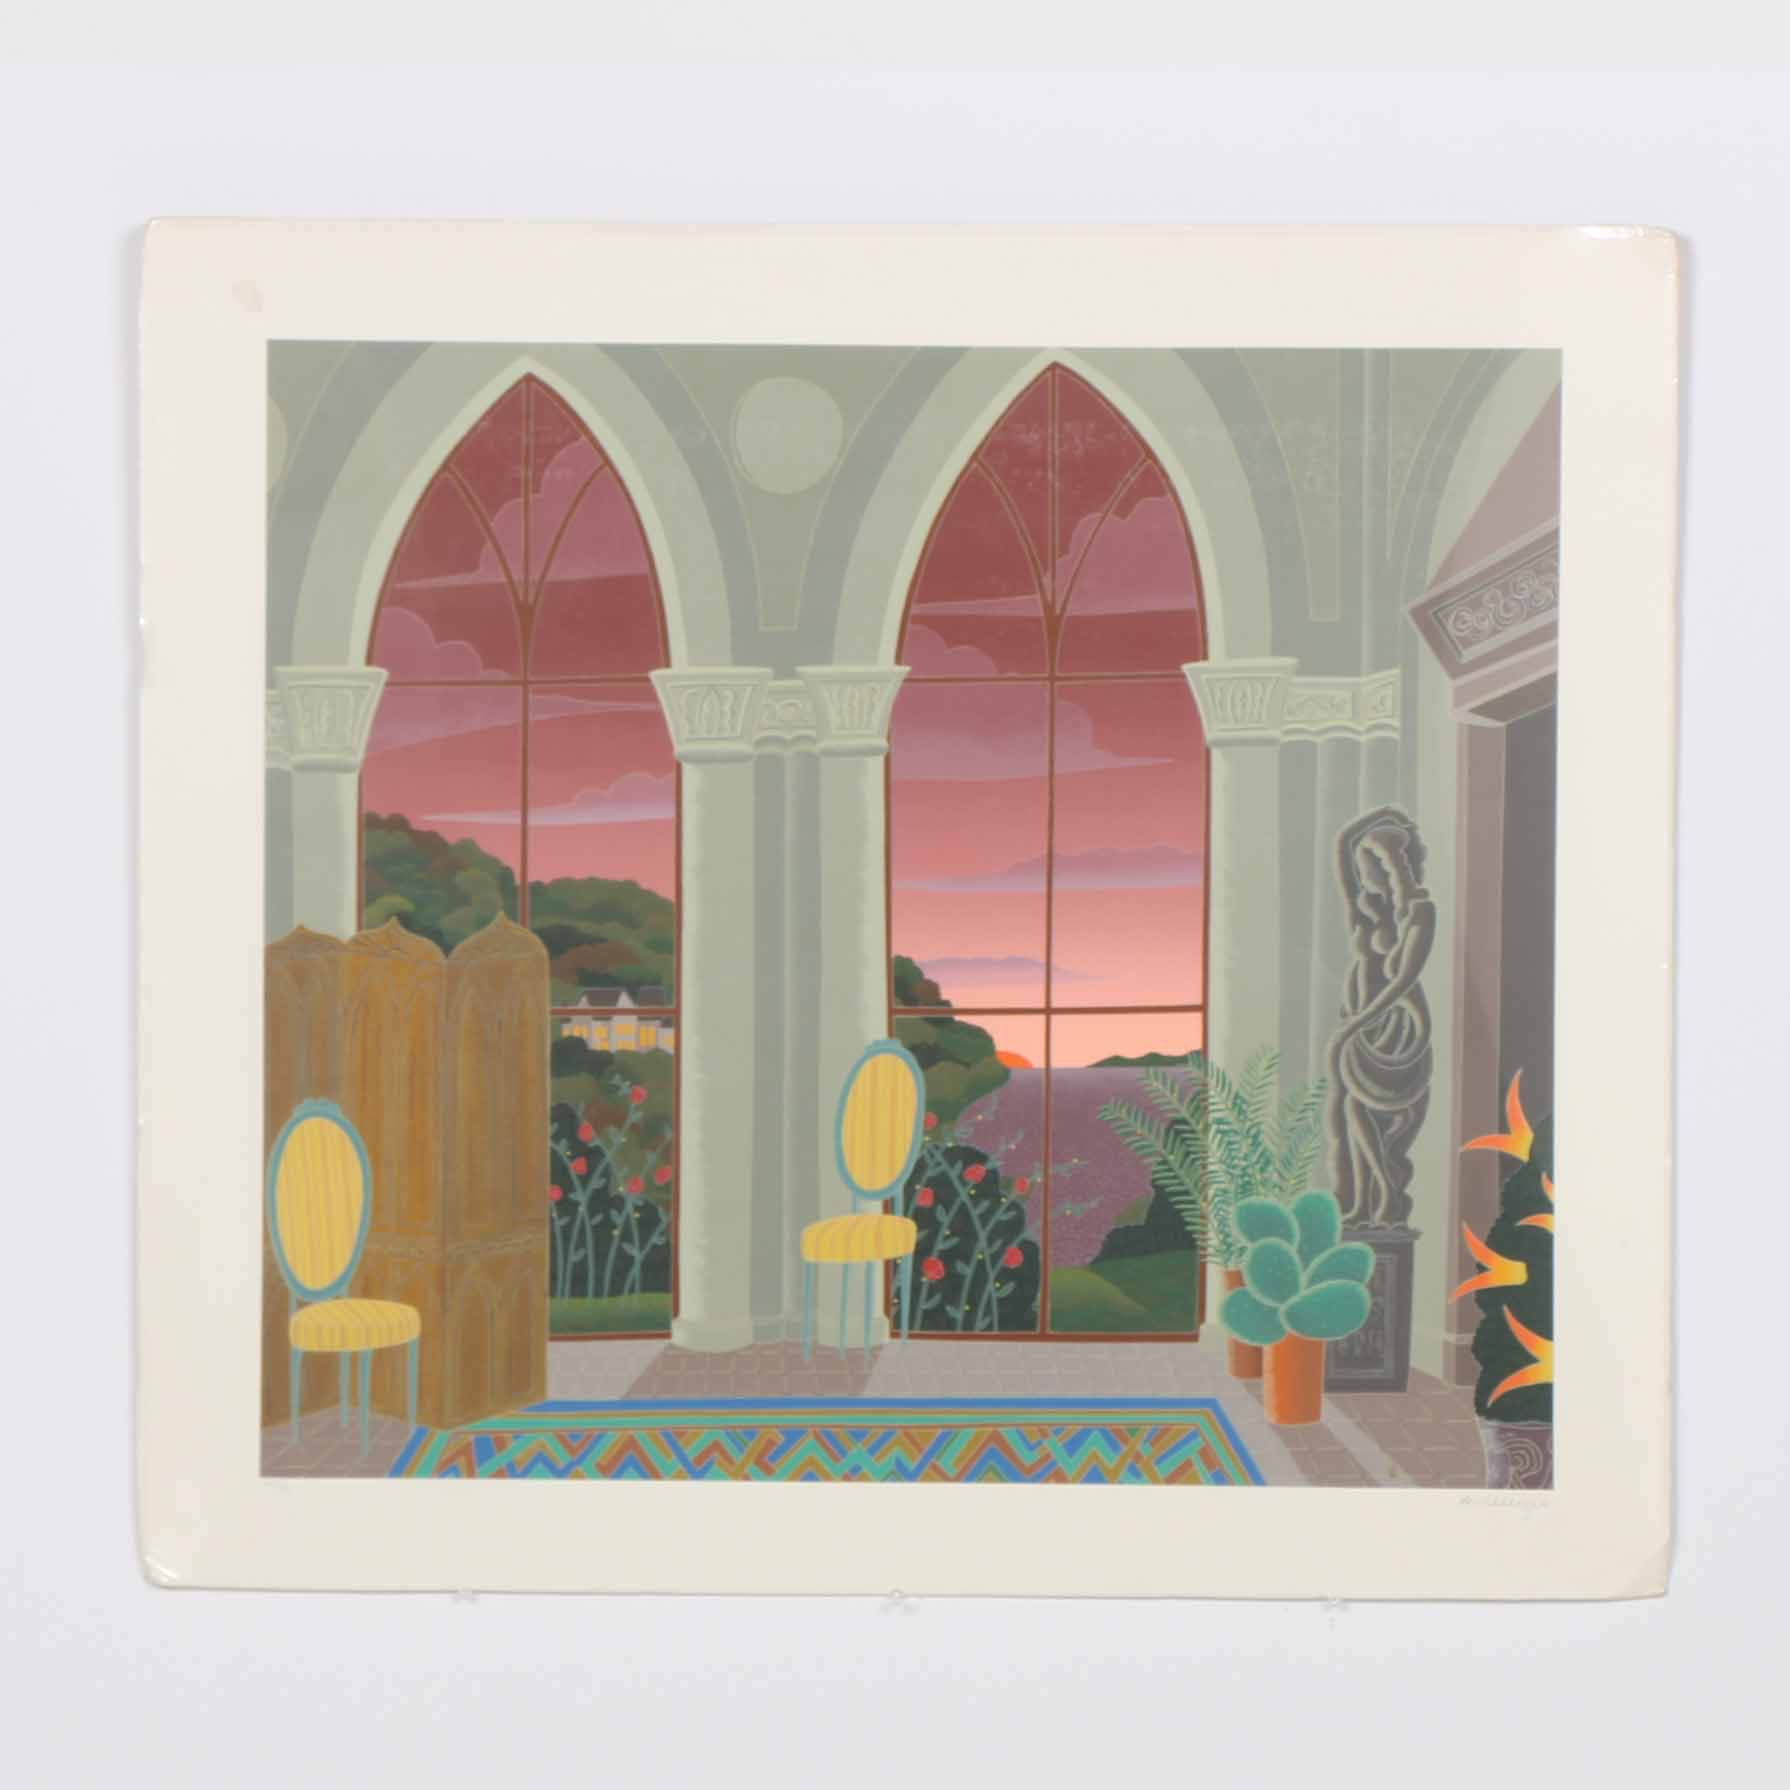 Thomas McKnight Limited Edition Serigraph of an Interior Scene a